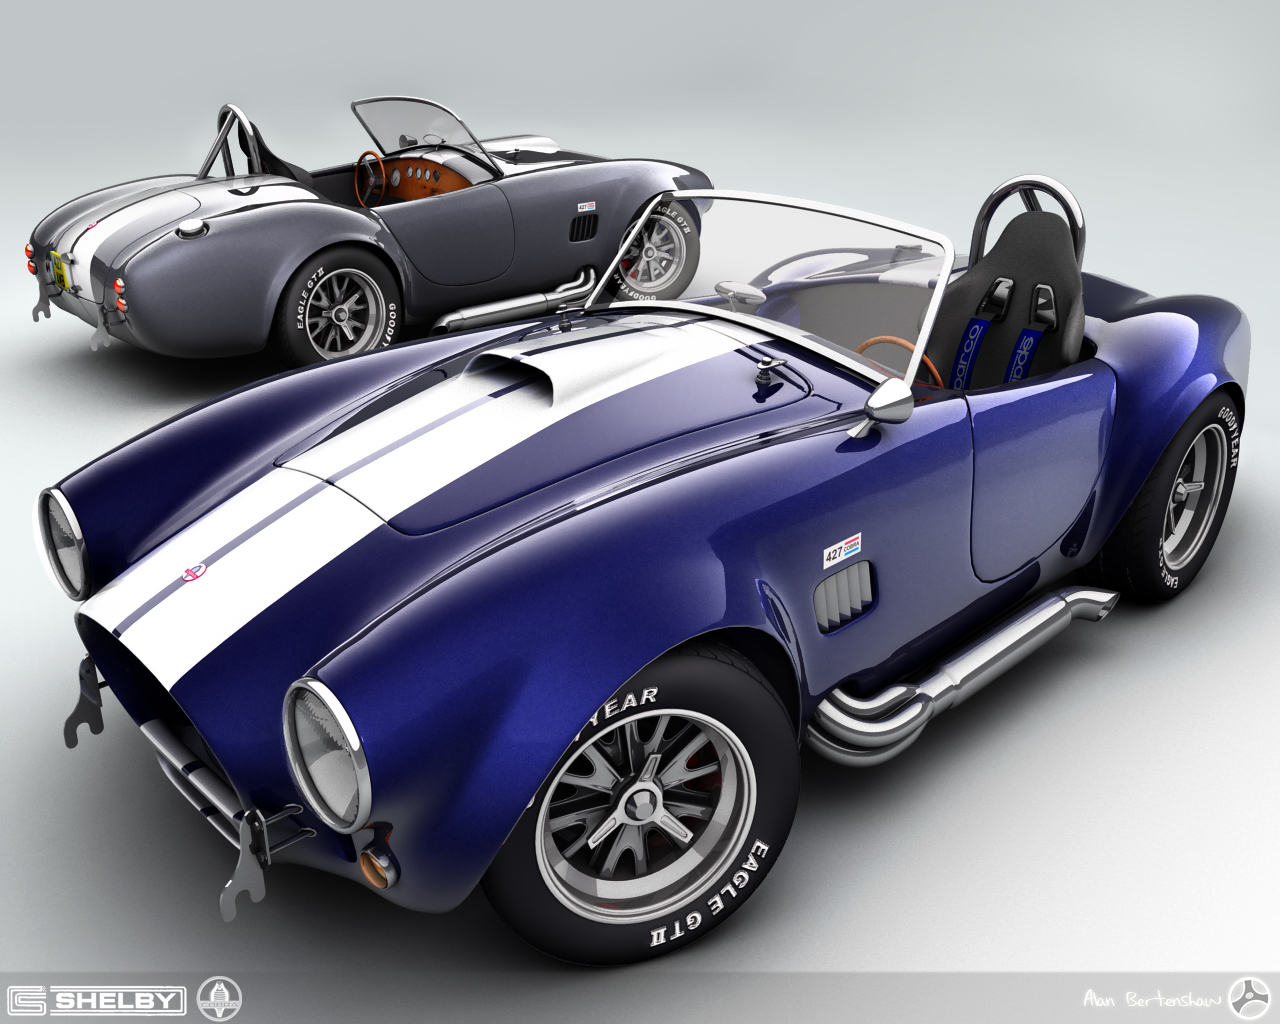 ac cobra 427 for sale wallpaper 1280x1024 1276. Black Bedroom Furniture Sets. Home Design Ideas